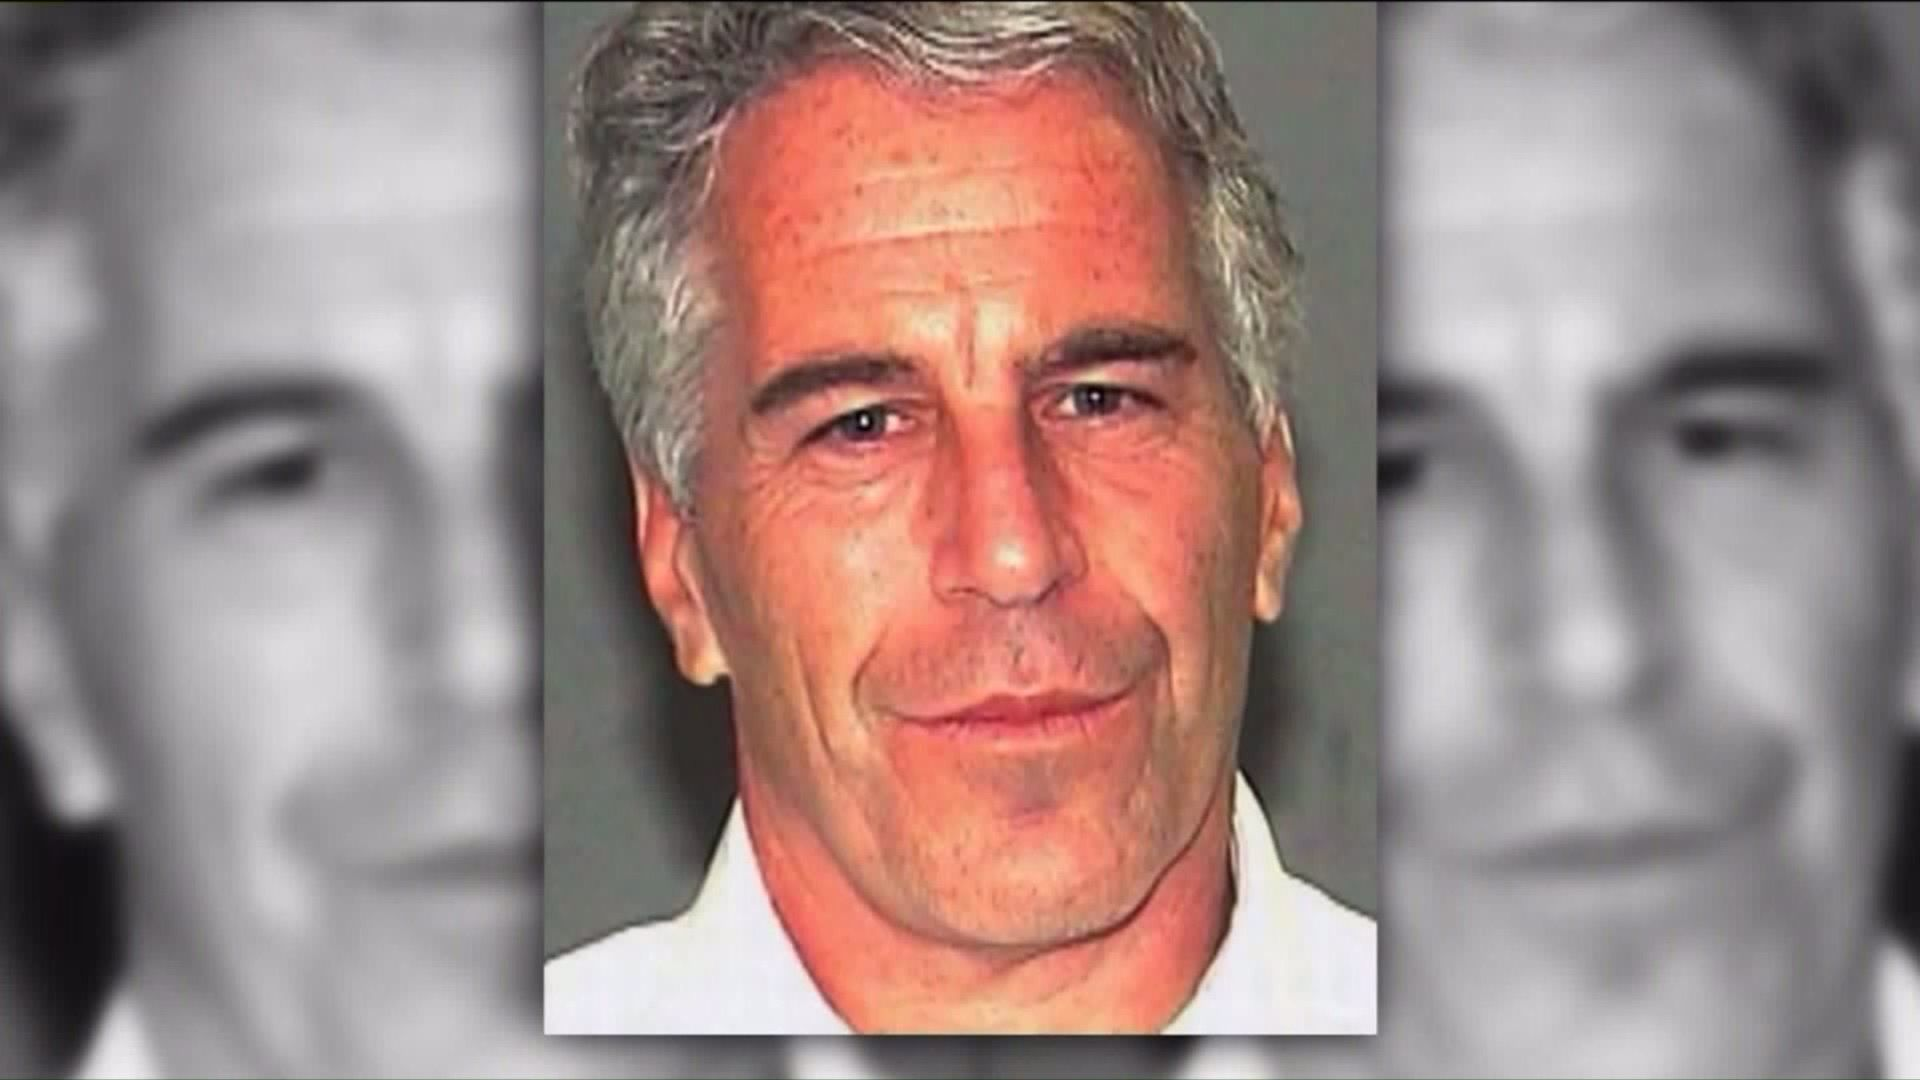 NY Cops Gave Jeffrey Epstein A Pass While Making More Than 7,000 Arrests For Similar Offenses